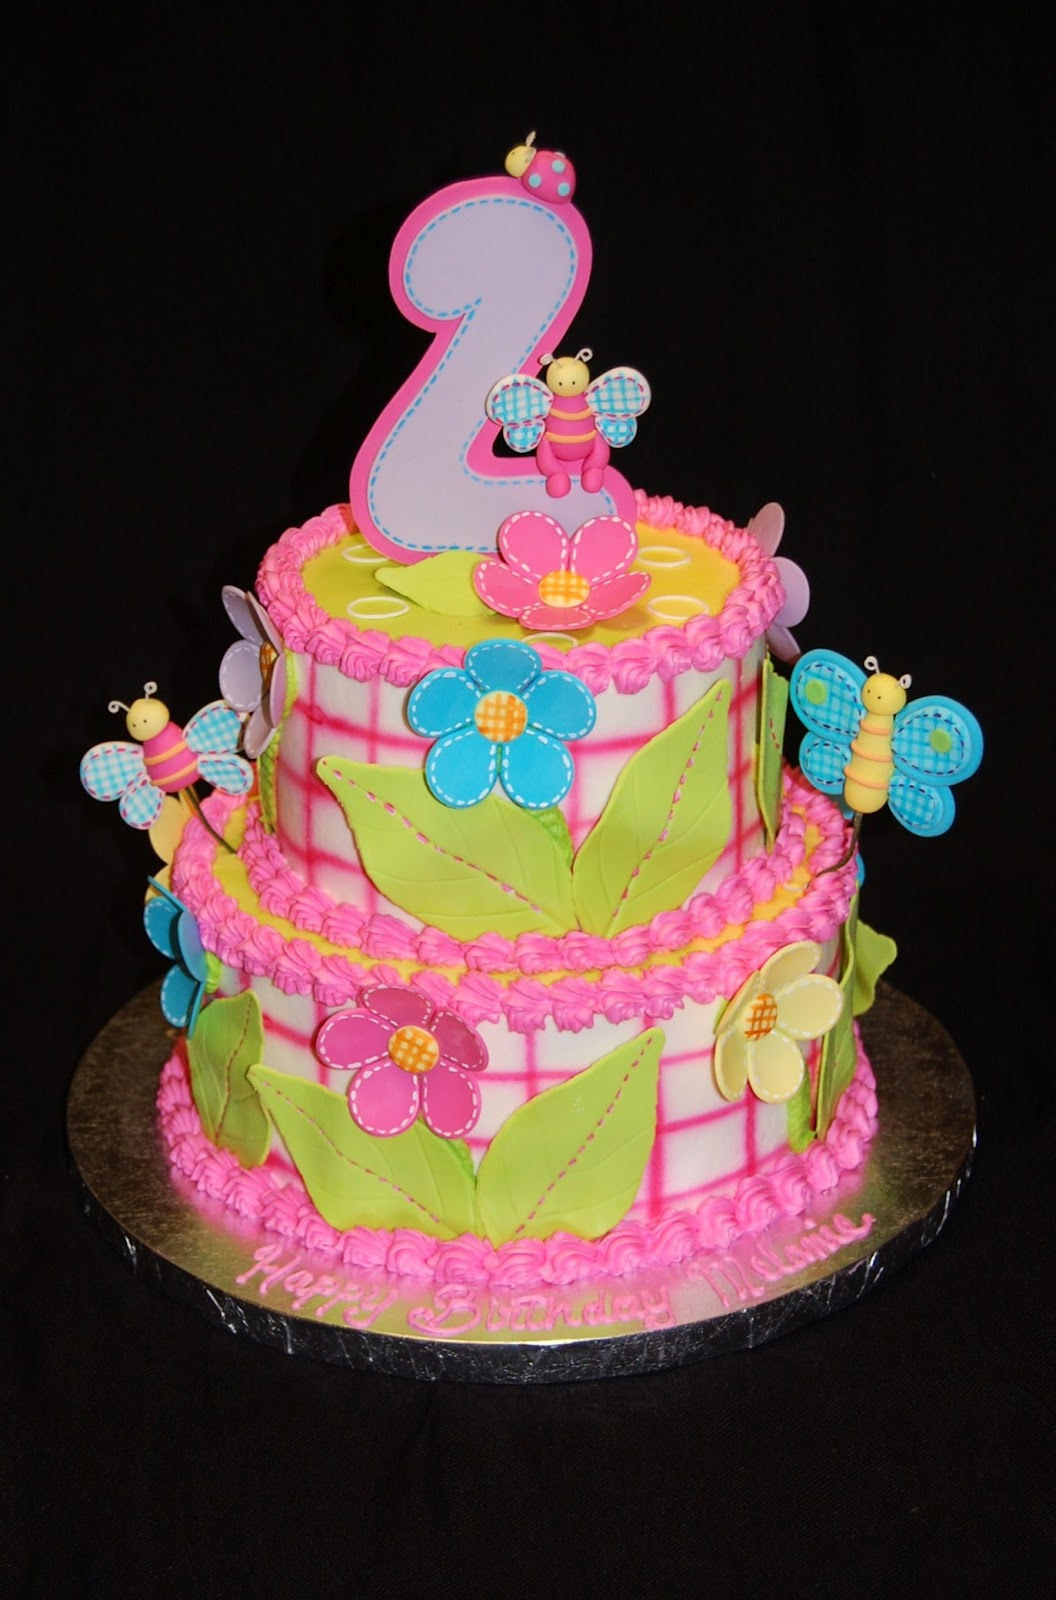 Cake Design Butterfly : Cake Butterfly Theme Cake Ideas and Designs